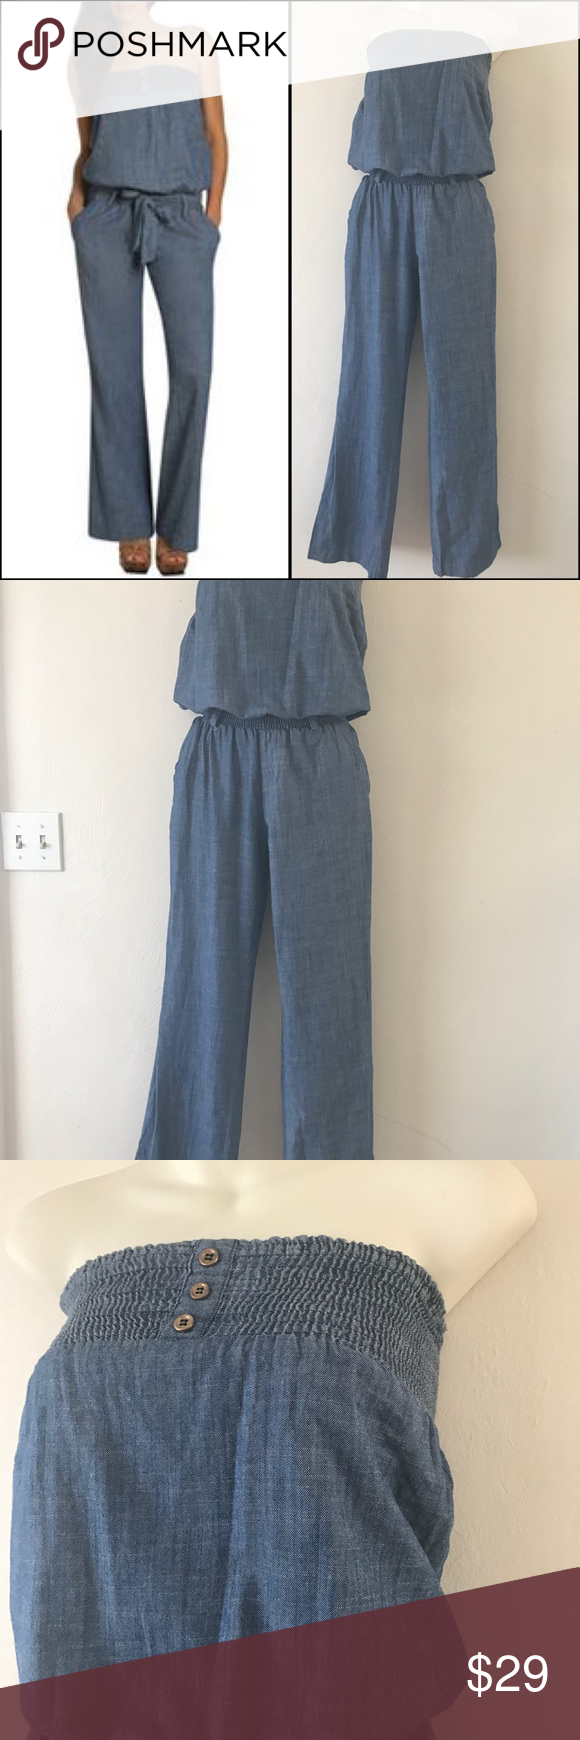 fc97badd0ad Arden B Chambray Jumpsuit Size small in excellent condition. Elastic bands  at top of chest